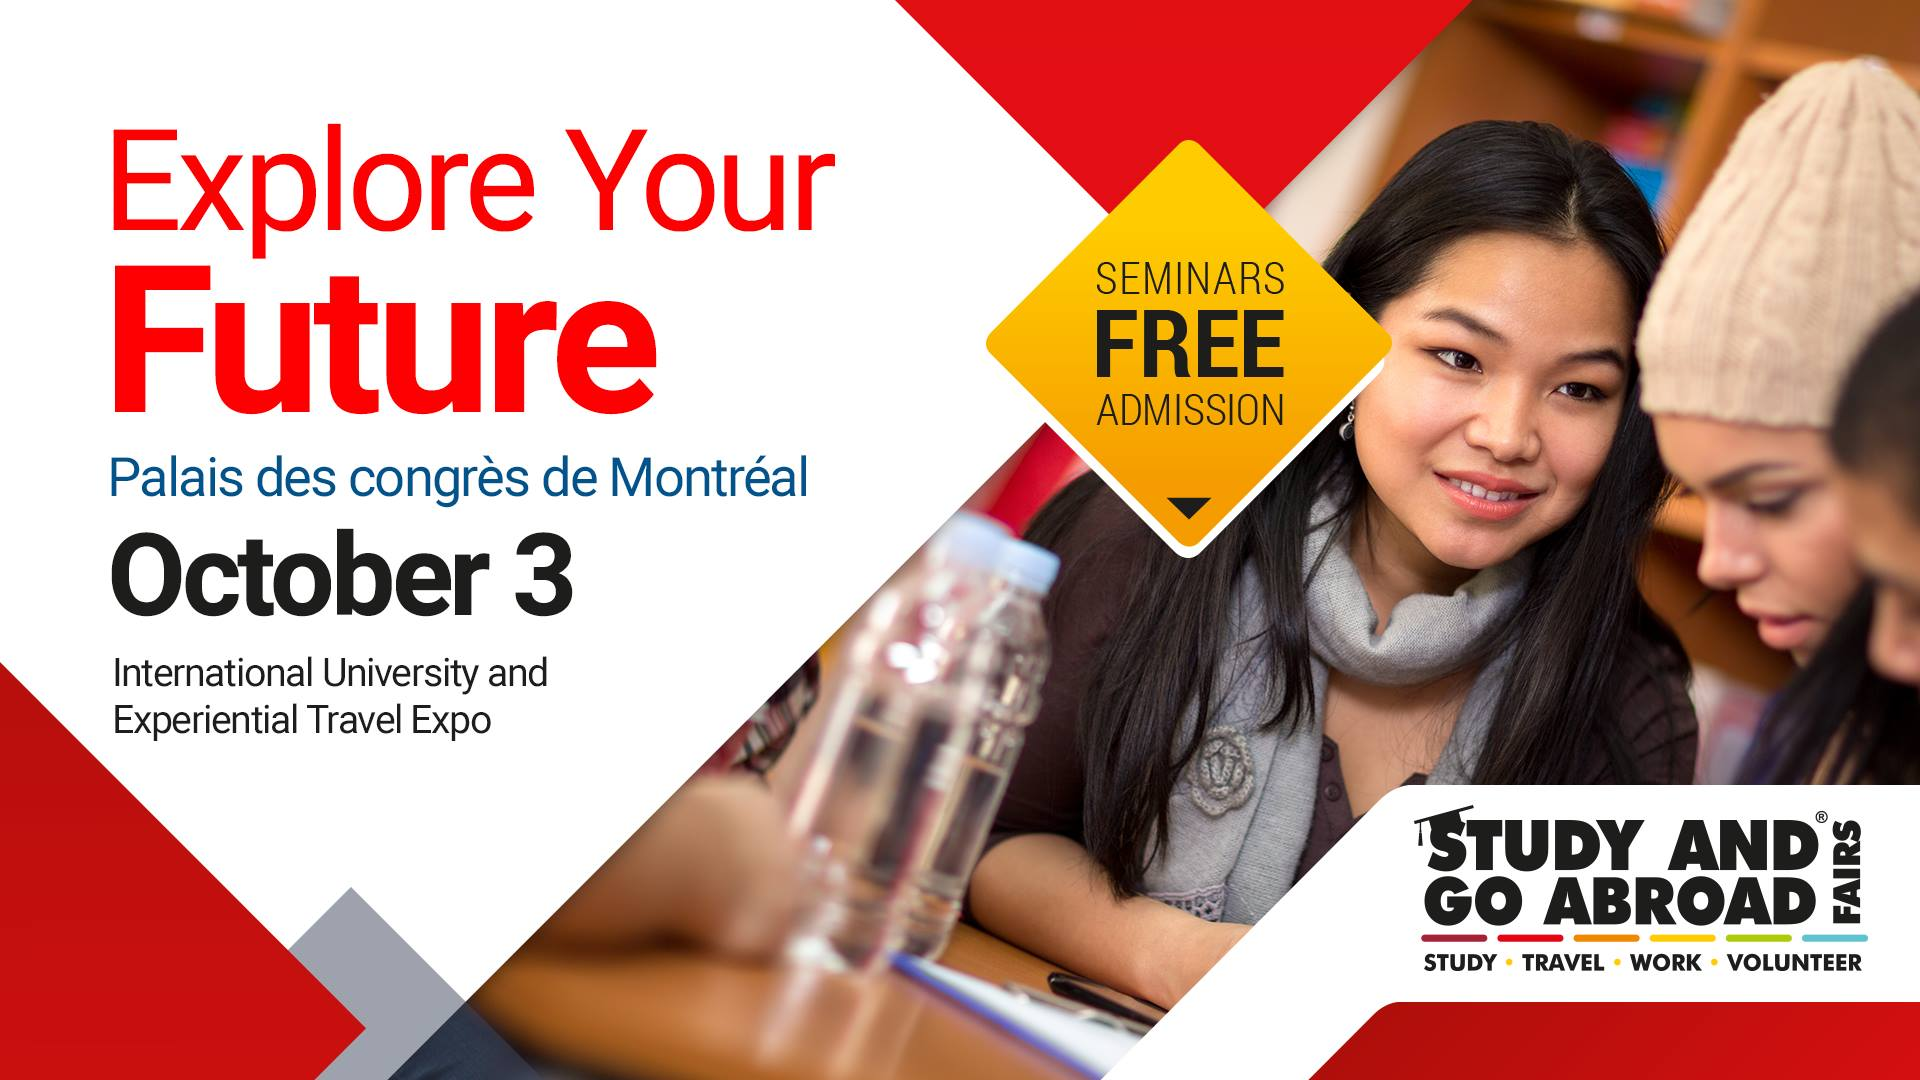 Study and Go Abroad – Montreal | EducationUSA Canada